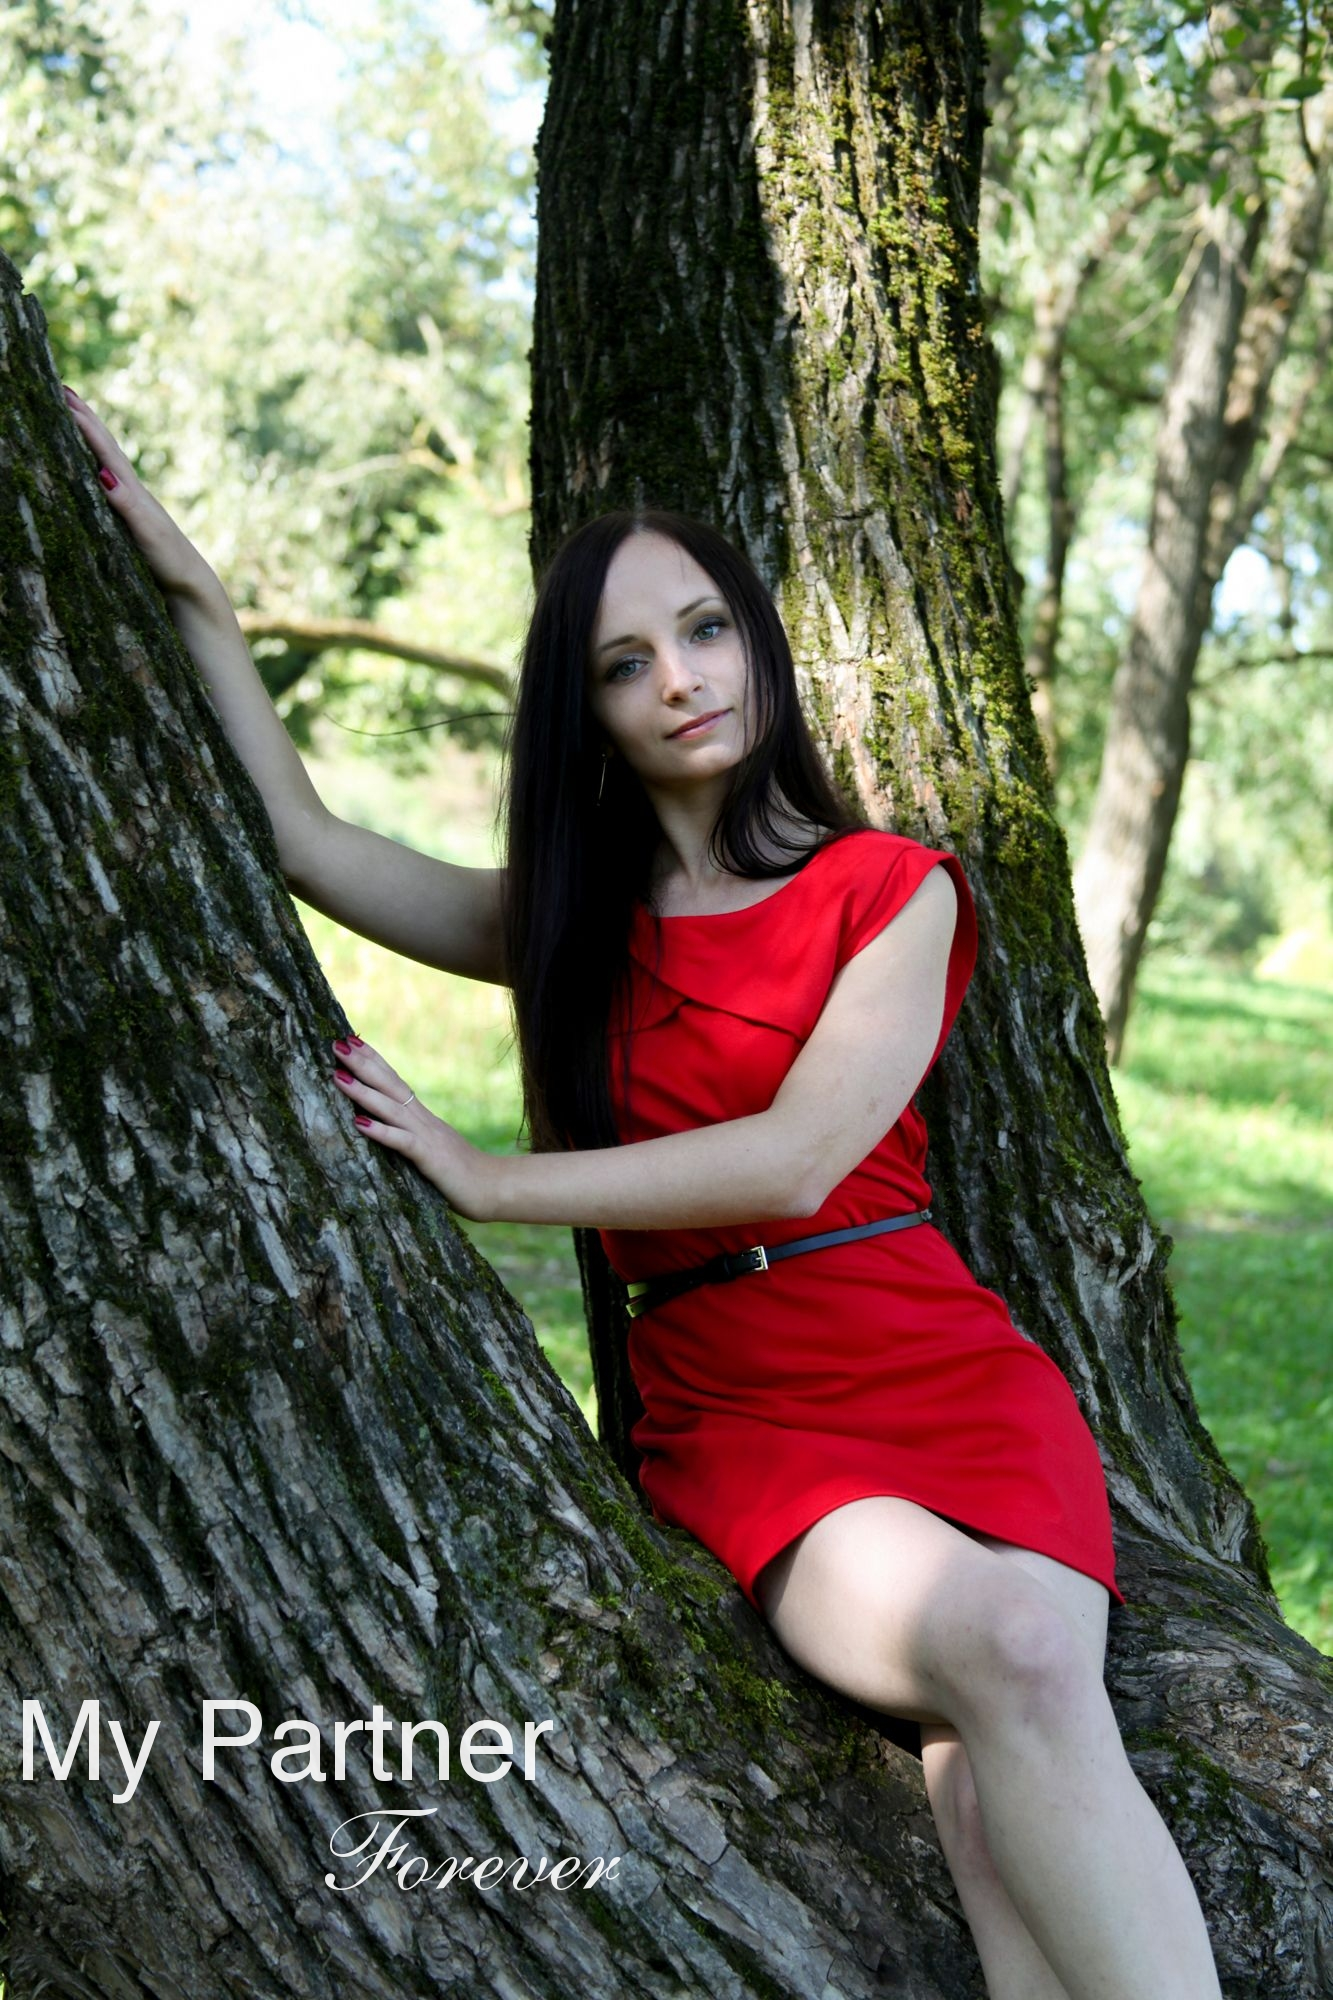 Dating Service to Meet Beautiful Russian Woman Kseniya from St. Petersburg, Russia